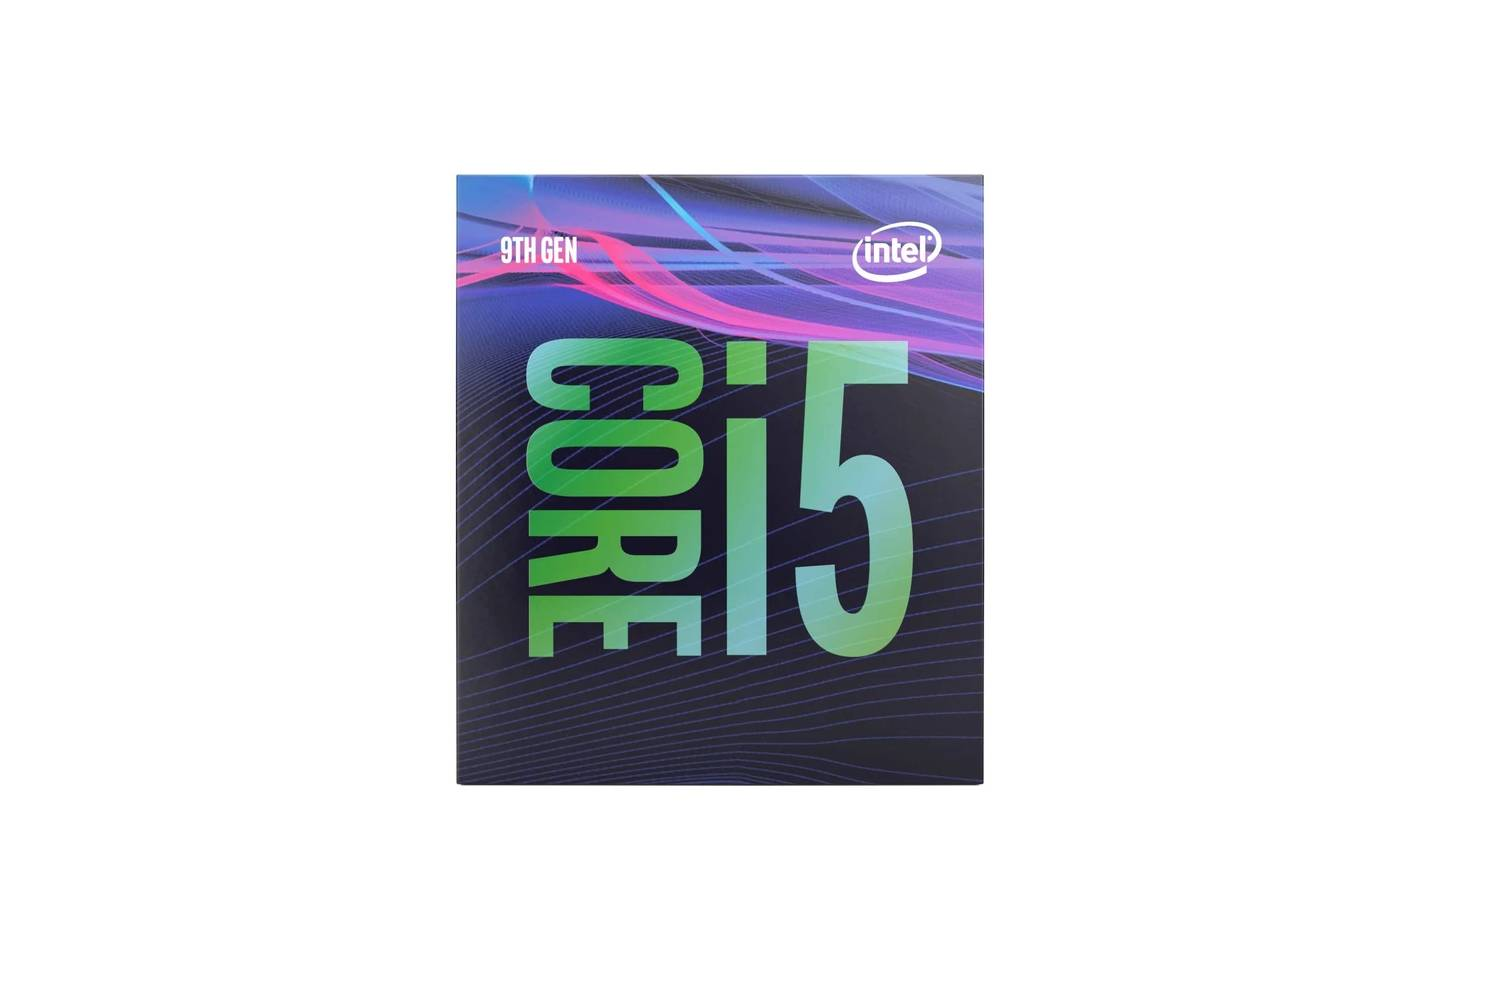 Intel Core i5 9500F 9th Generation Desktop Processor